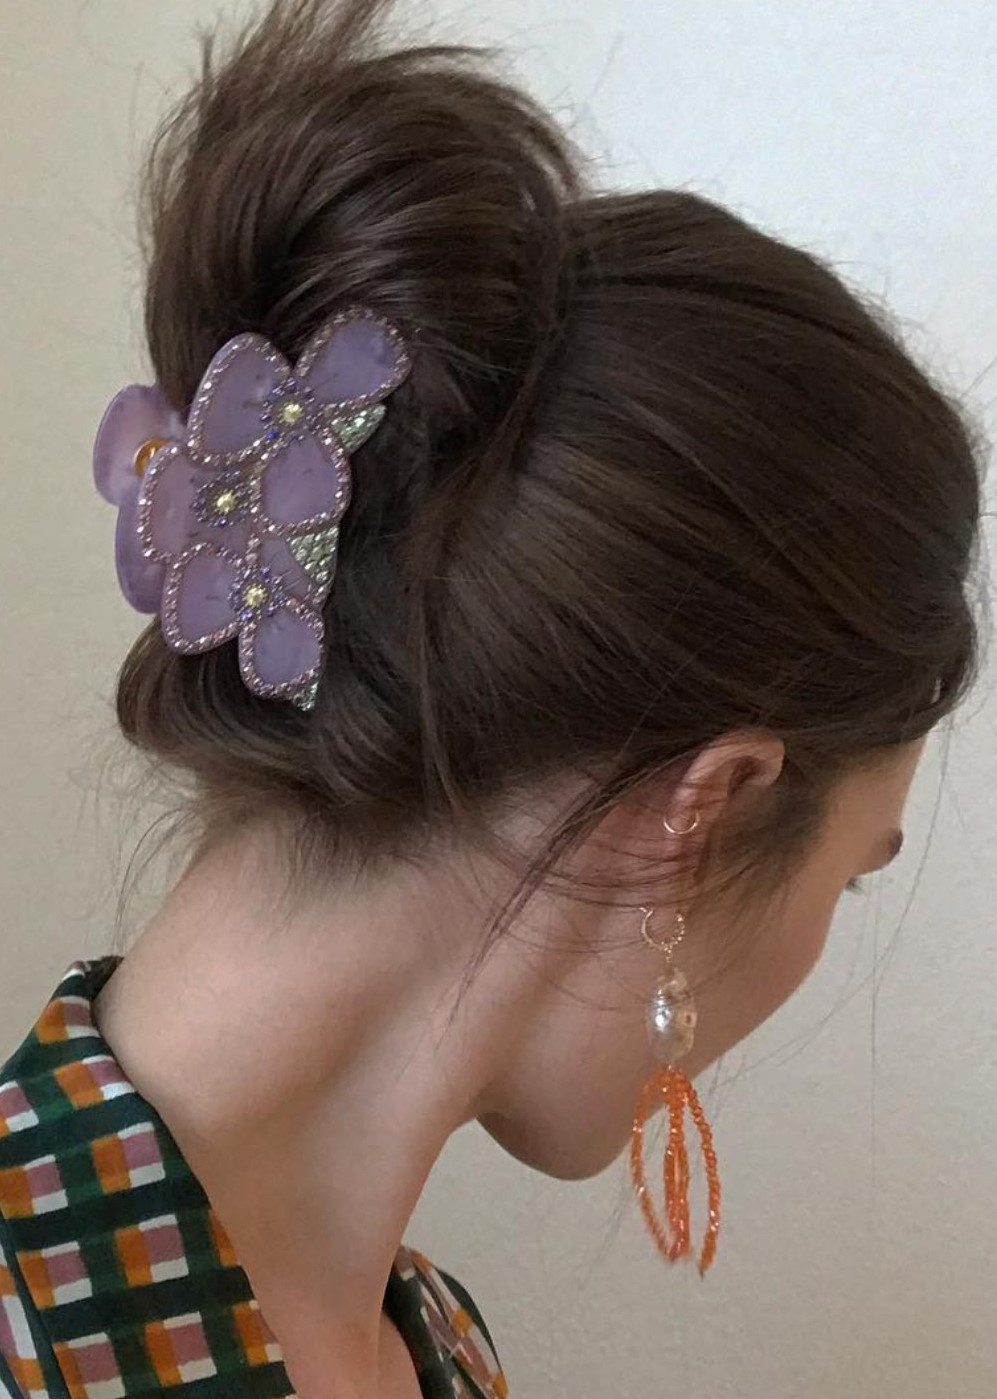 how-to-style-hair-accessories-claw-clips-butterfly-banana-purple-twist-decorative-earrings.jpg